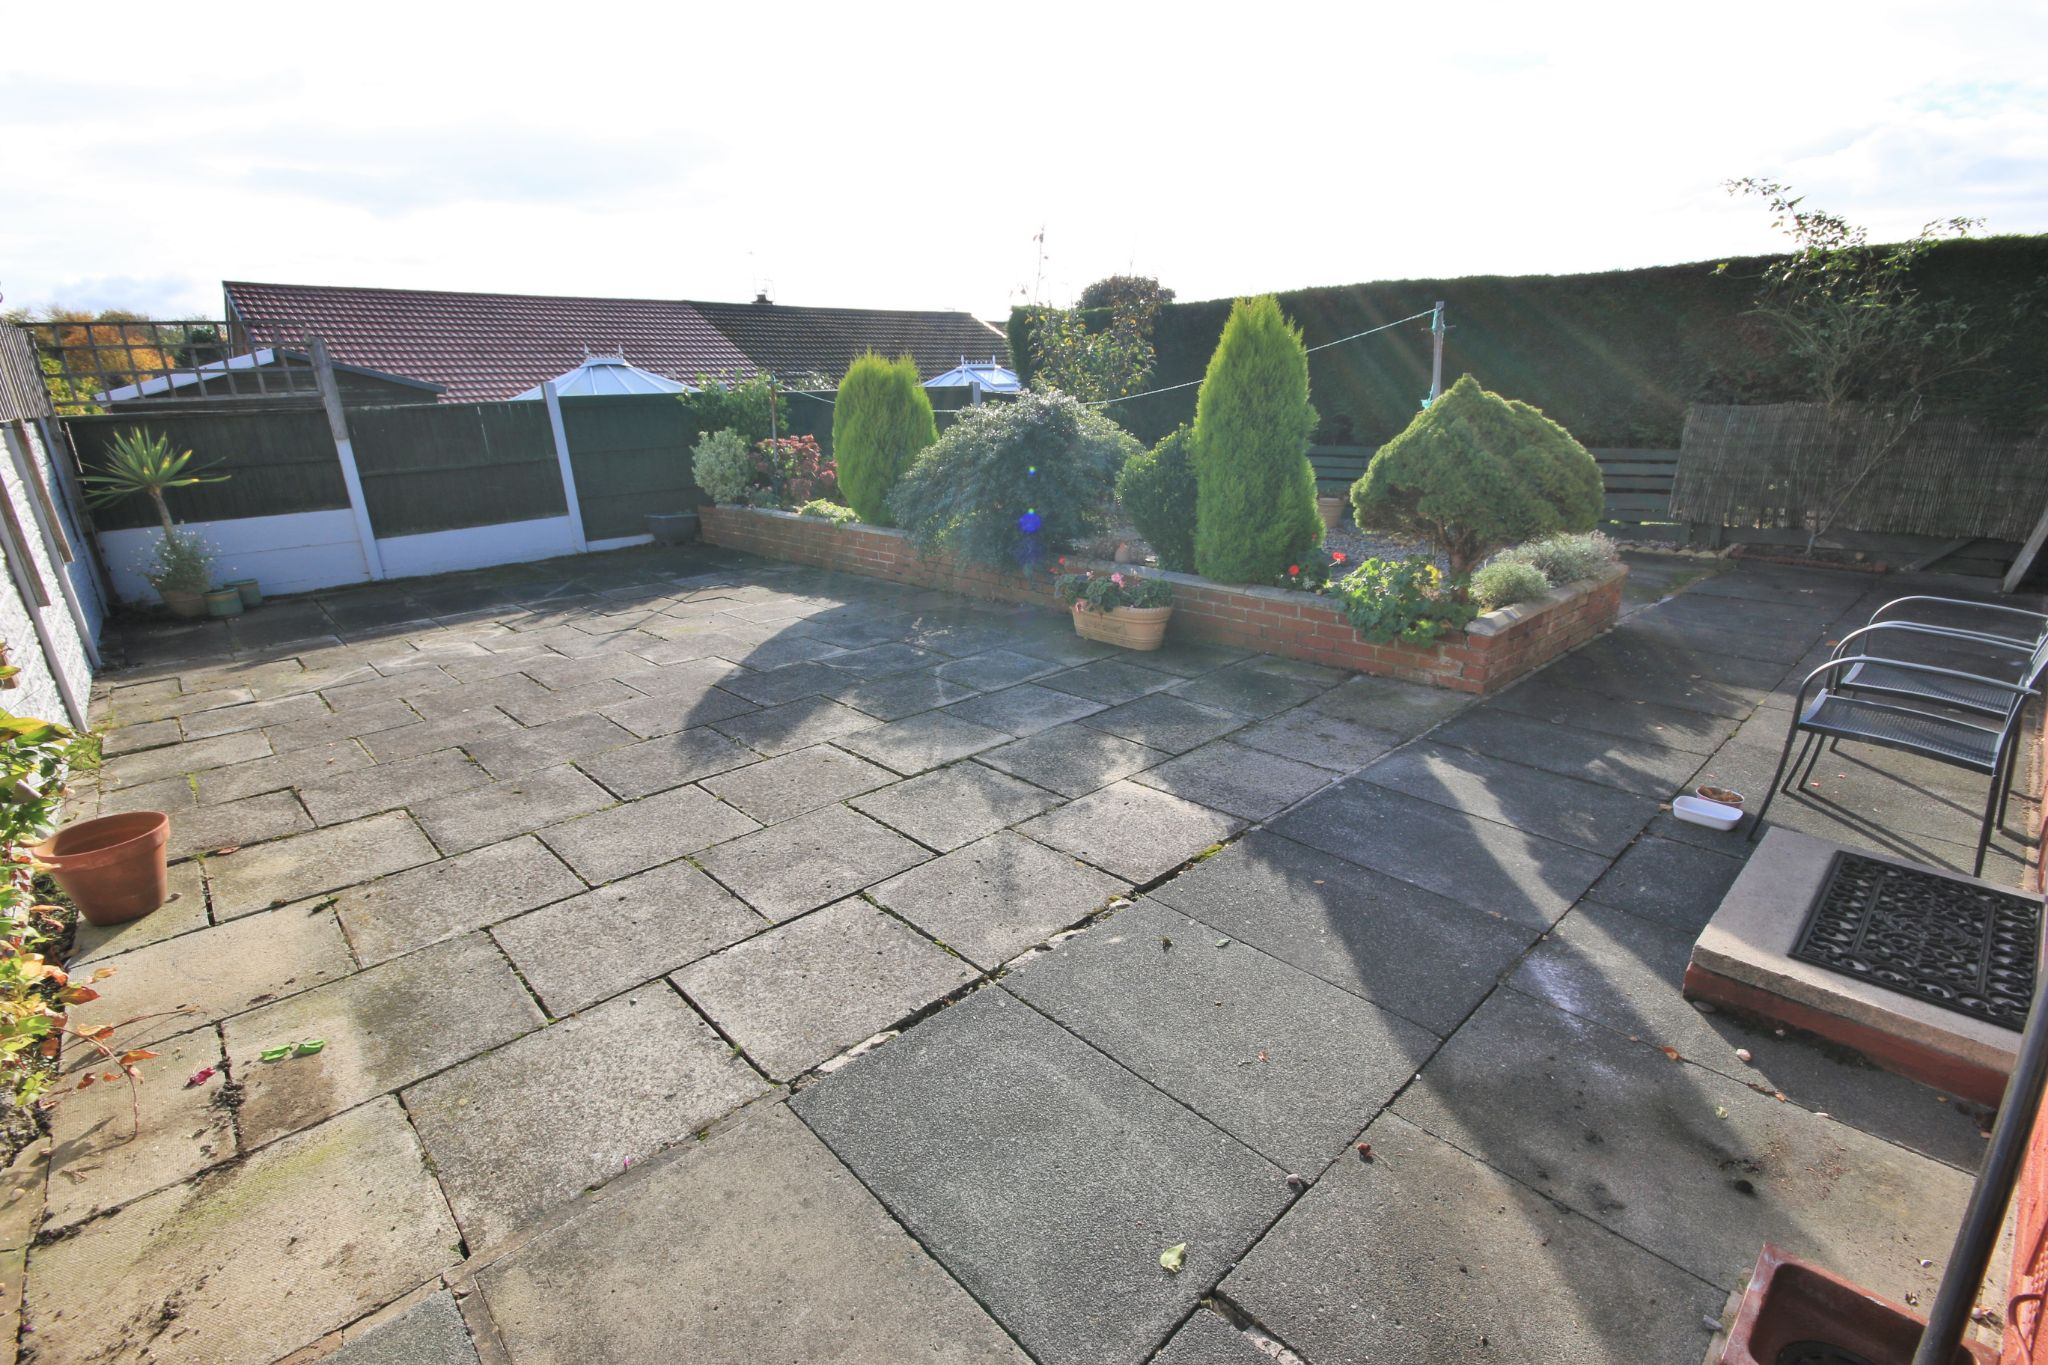 4 Bedroom Semi-detached Bungalow For Sale - Photograph 10